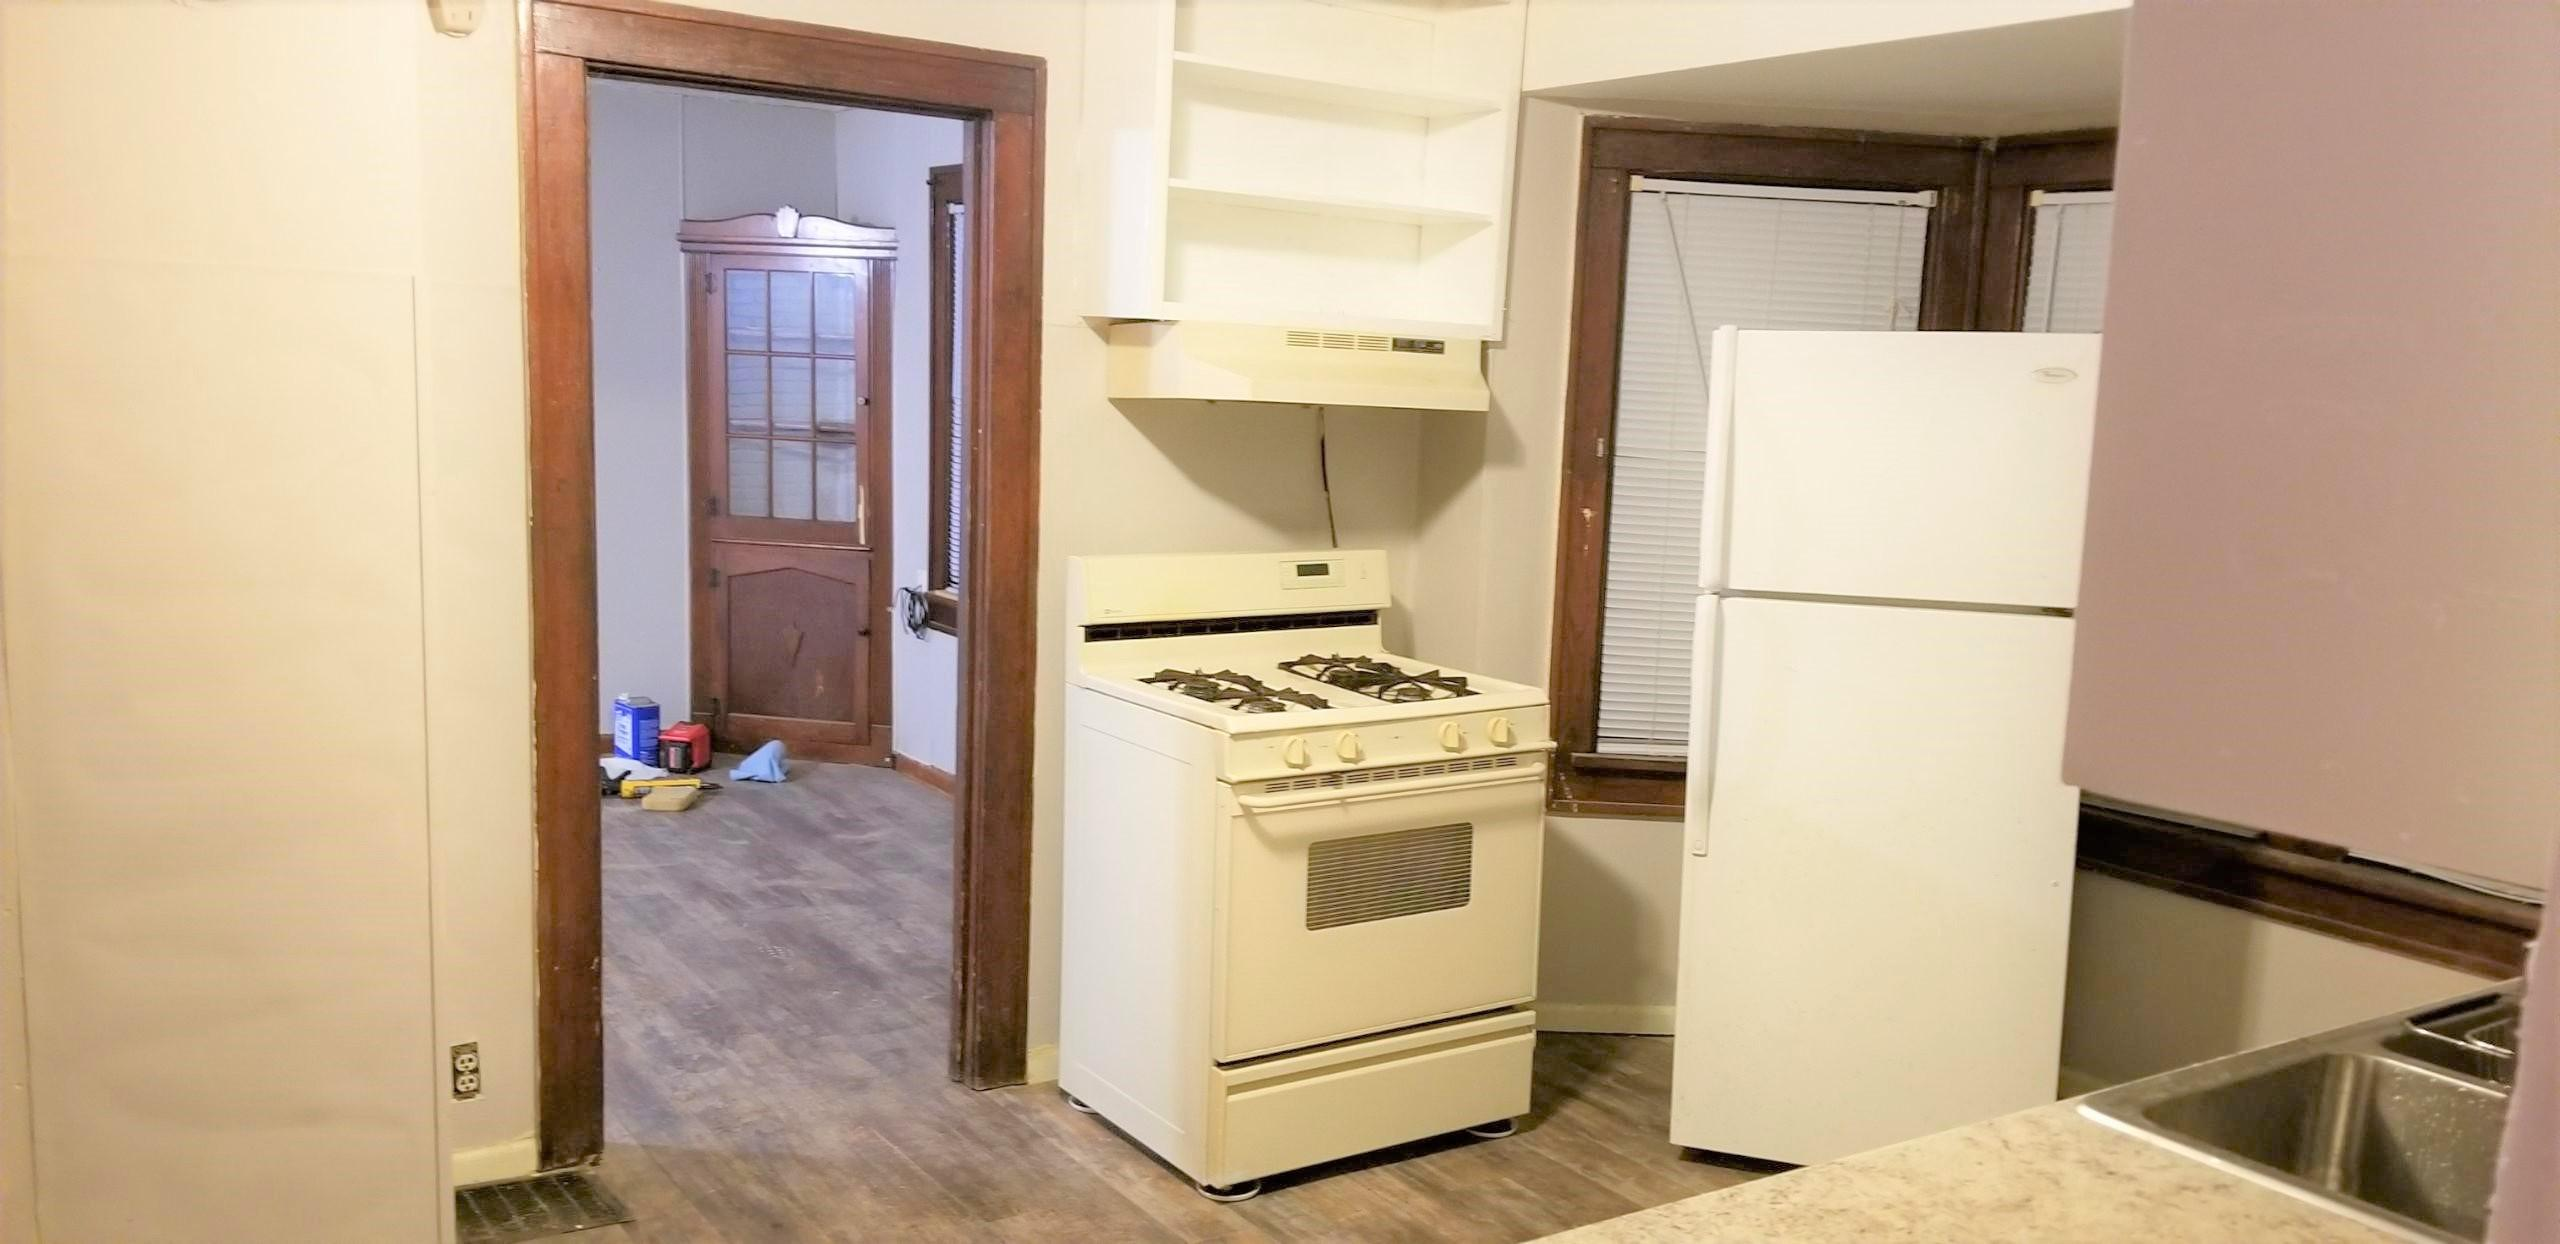 4723 34th St, Milwaukee, Wisconsin 53209, 2 Bedrooms Bedrooms, 5 Rooms Rooms,1 BathroomBathrooms,Single-Family,For Sale,34th St,1622410